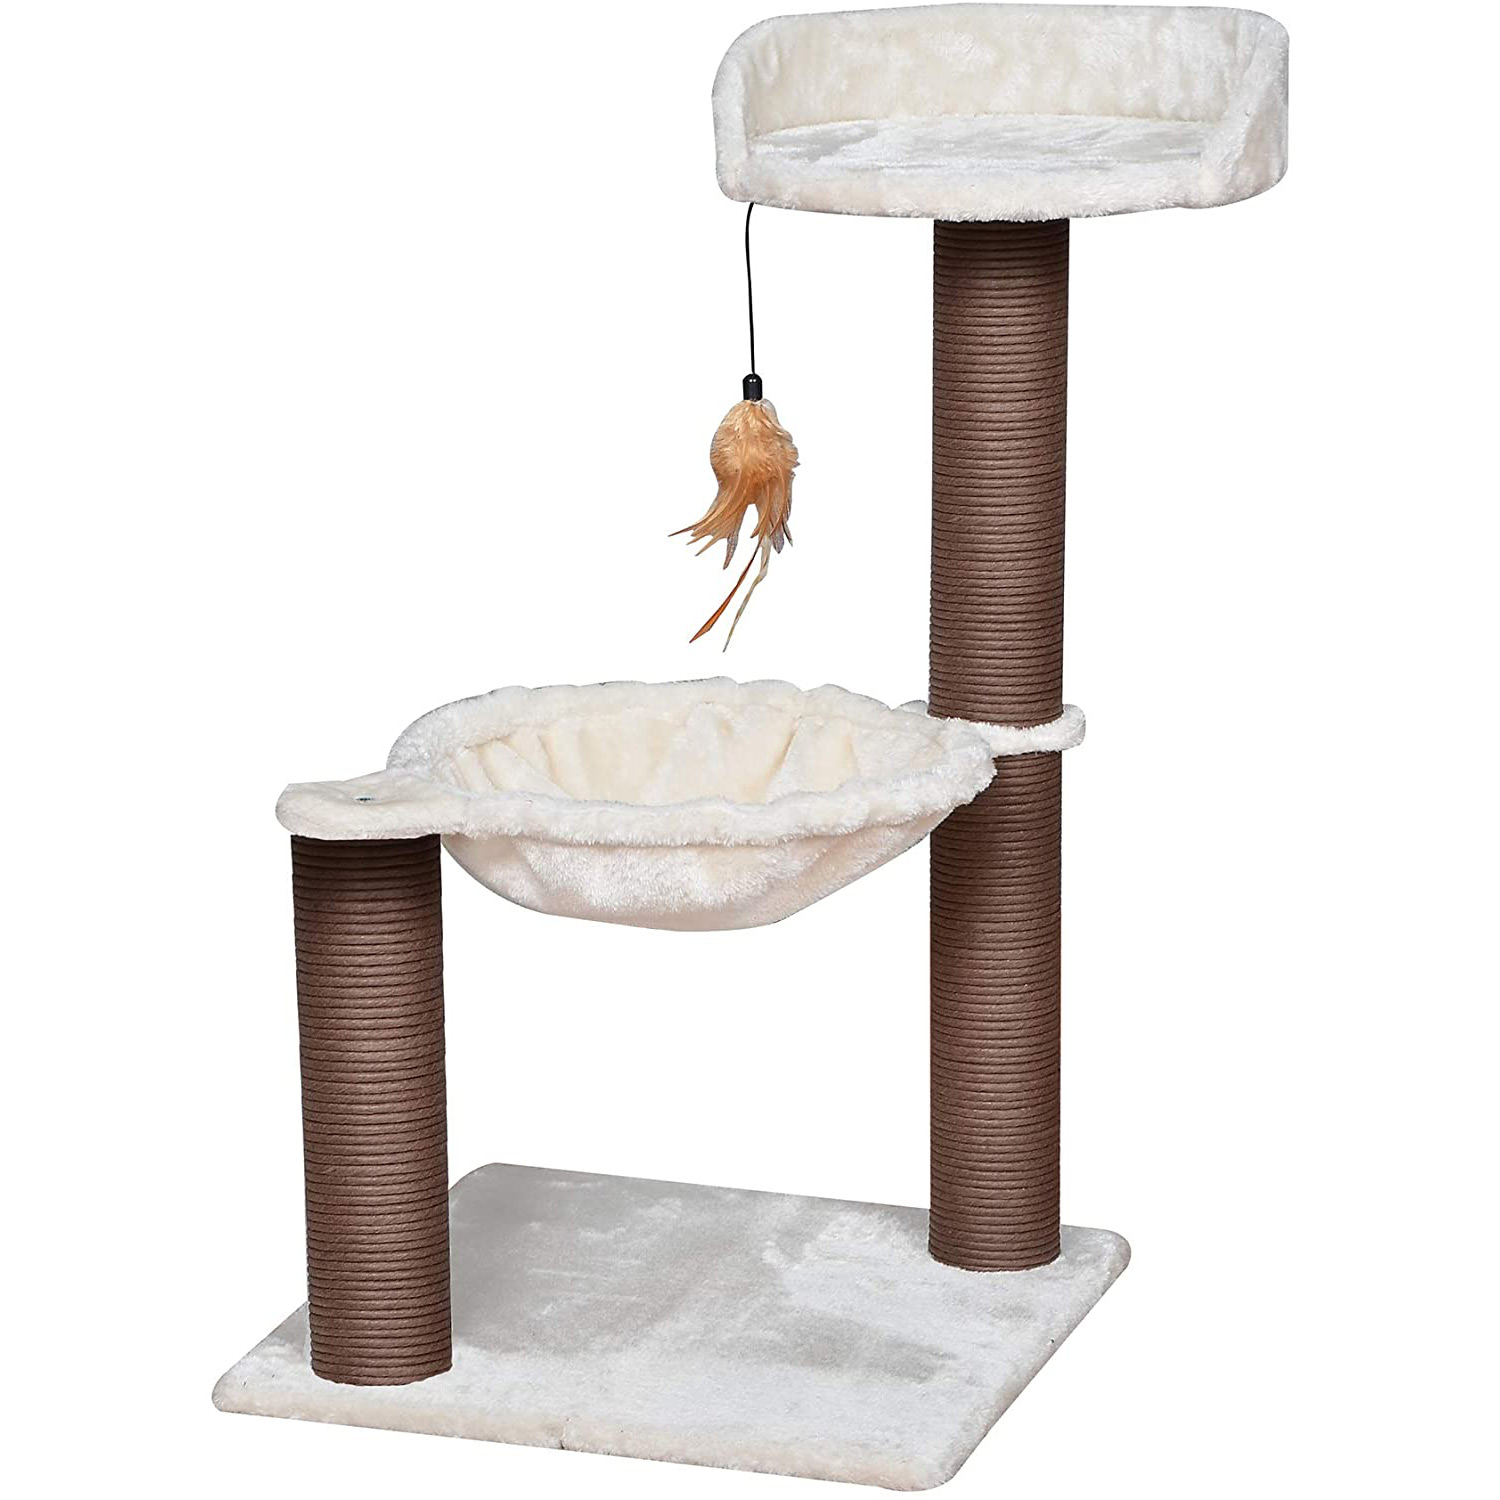 Catry Cat Tree Hammock Bed